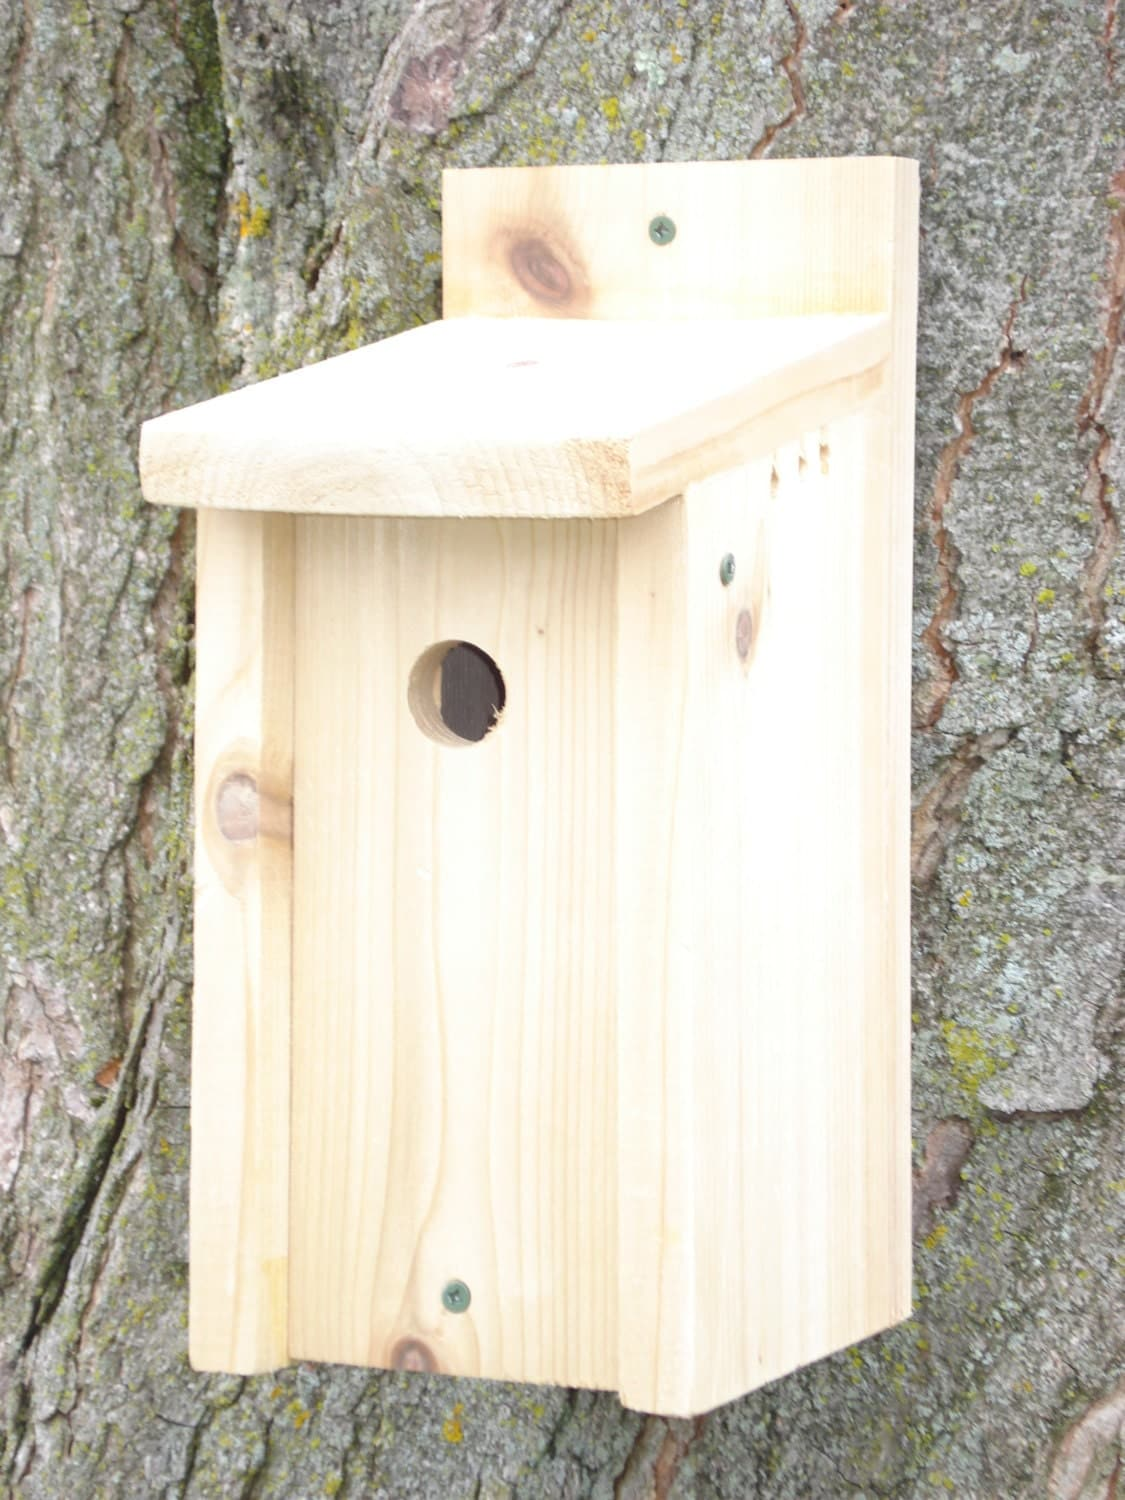 Species specific size birdhouses by thewildsongshop on etsy for Different types of birdhouses